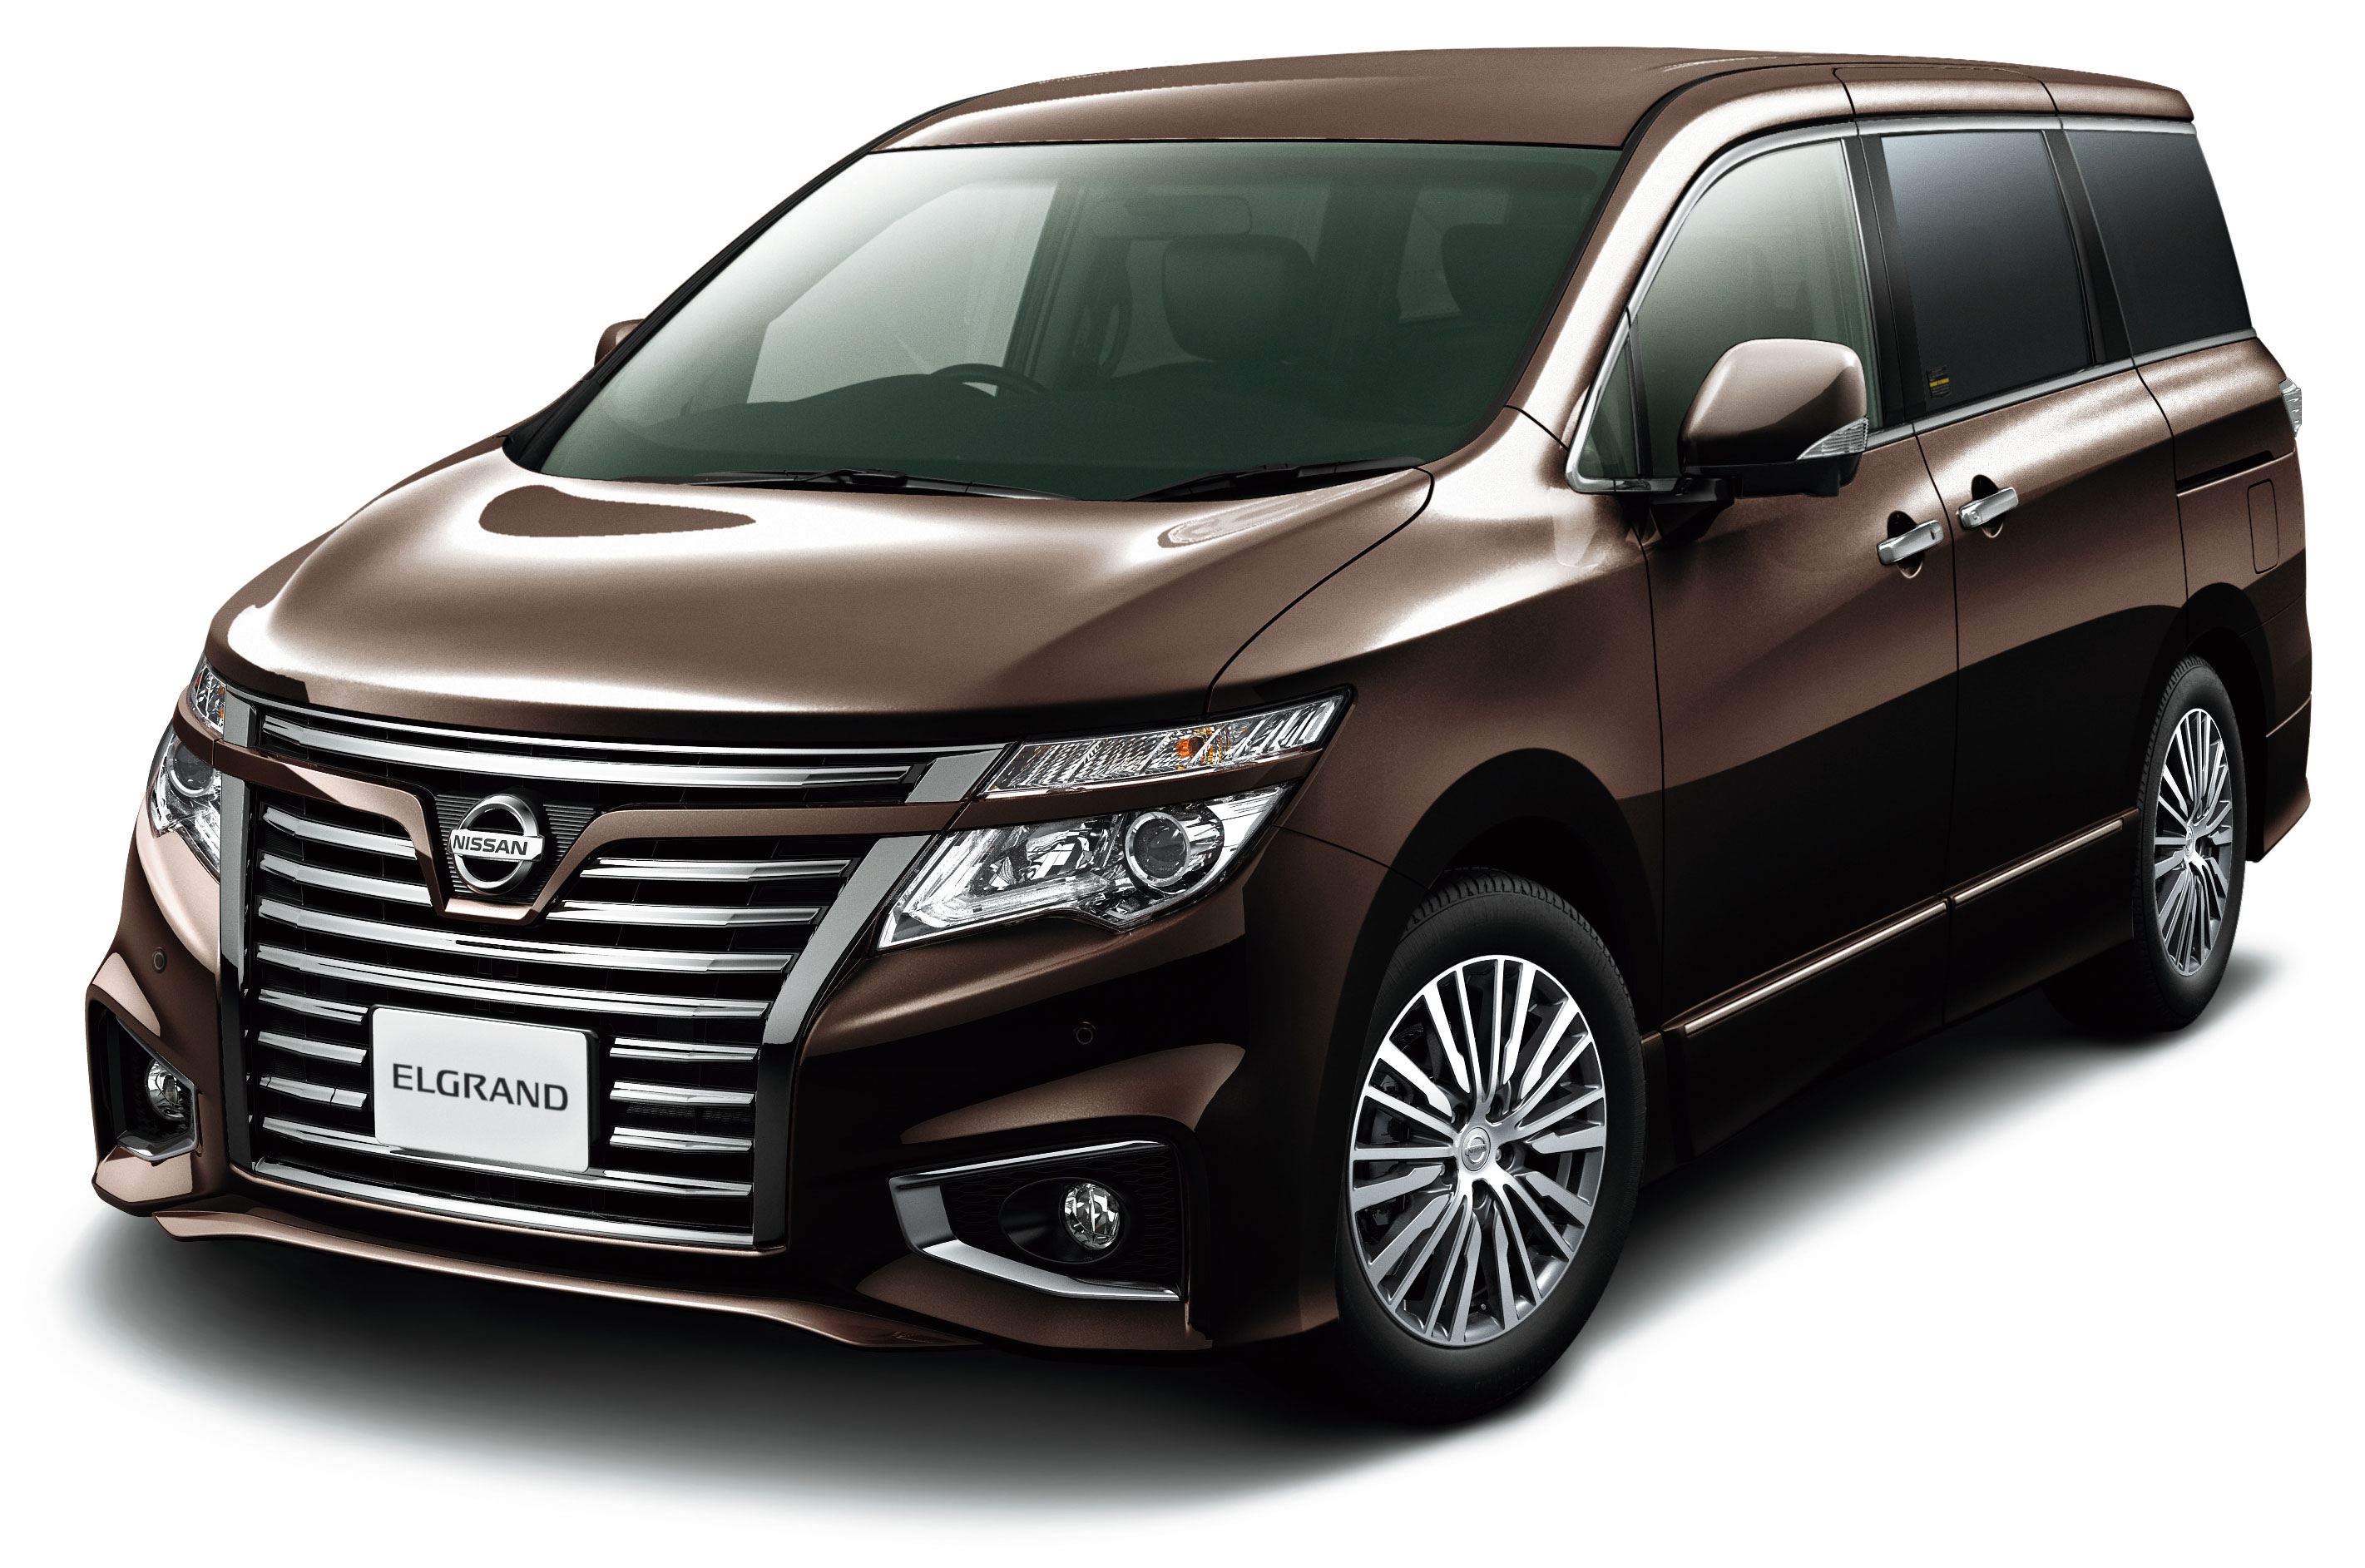 2014 Nissan Elgrand Facelift Has The Biggest Grille Ever